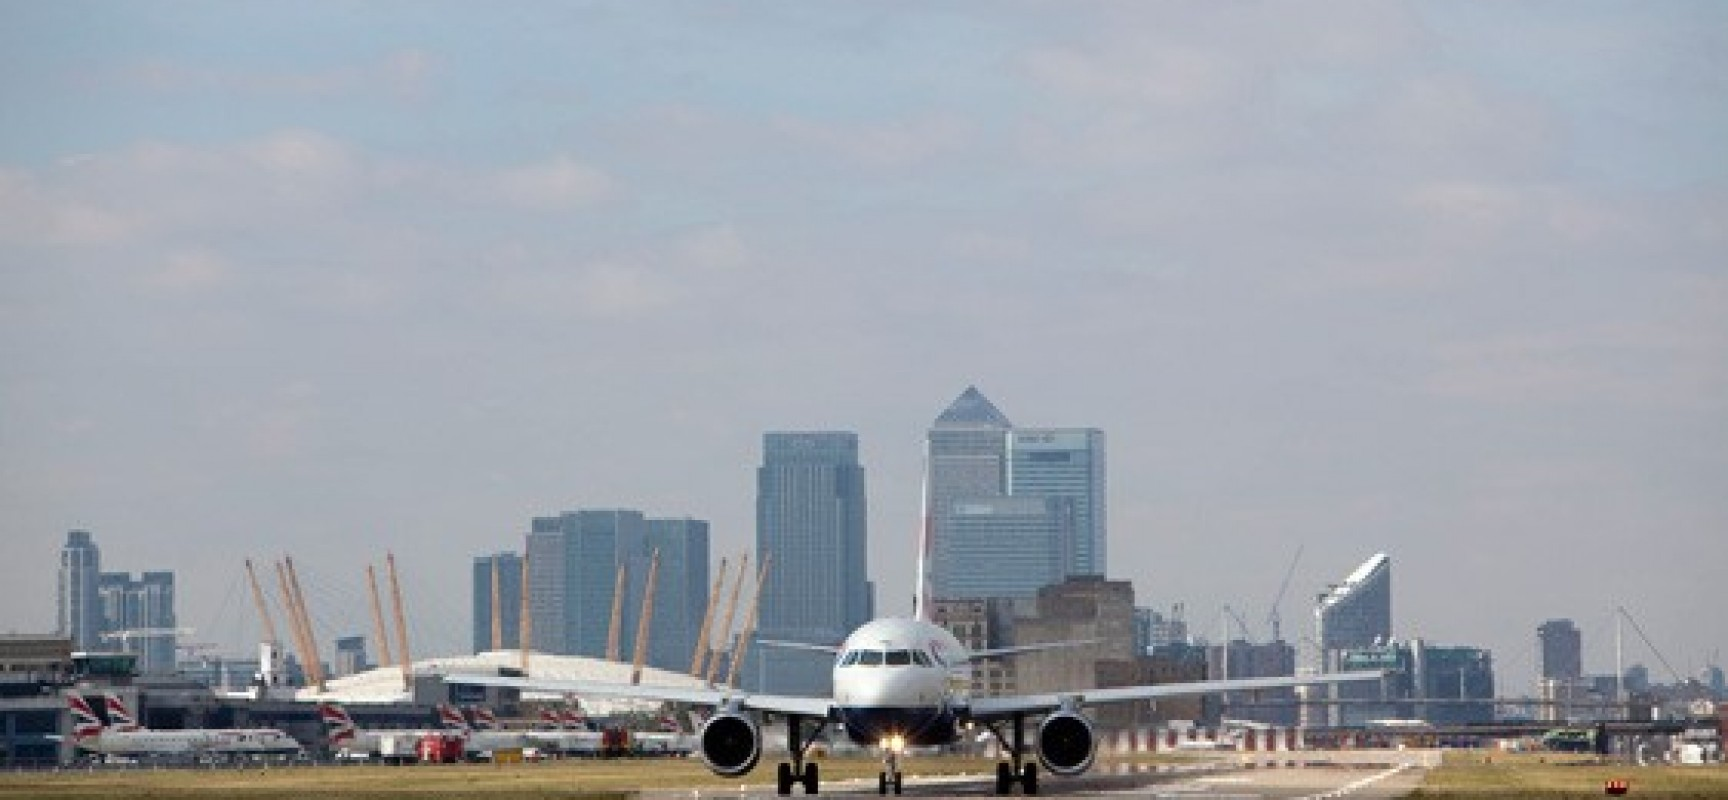 London City Airport A Busiest Airport In London City